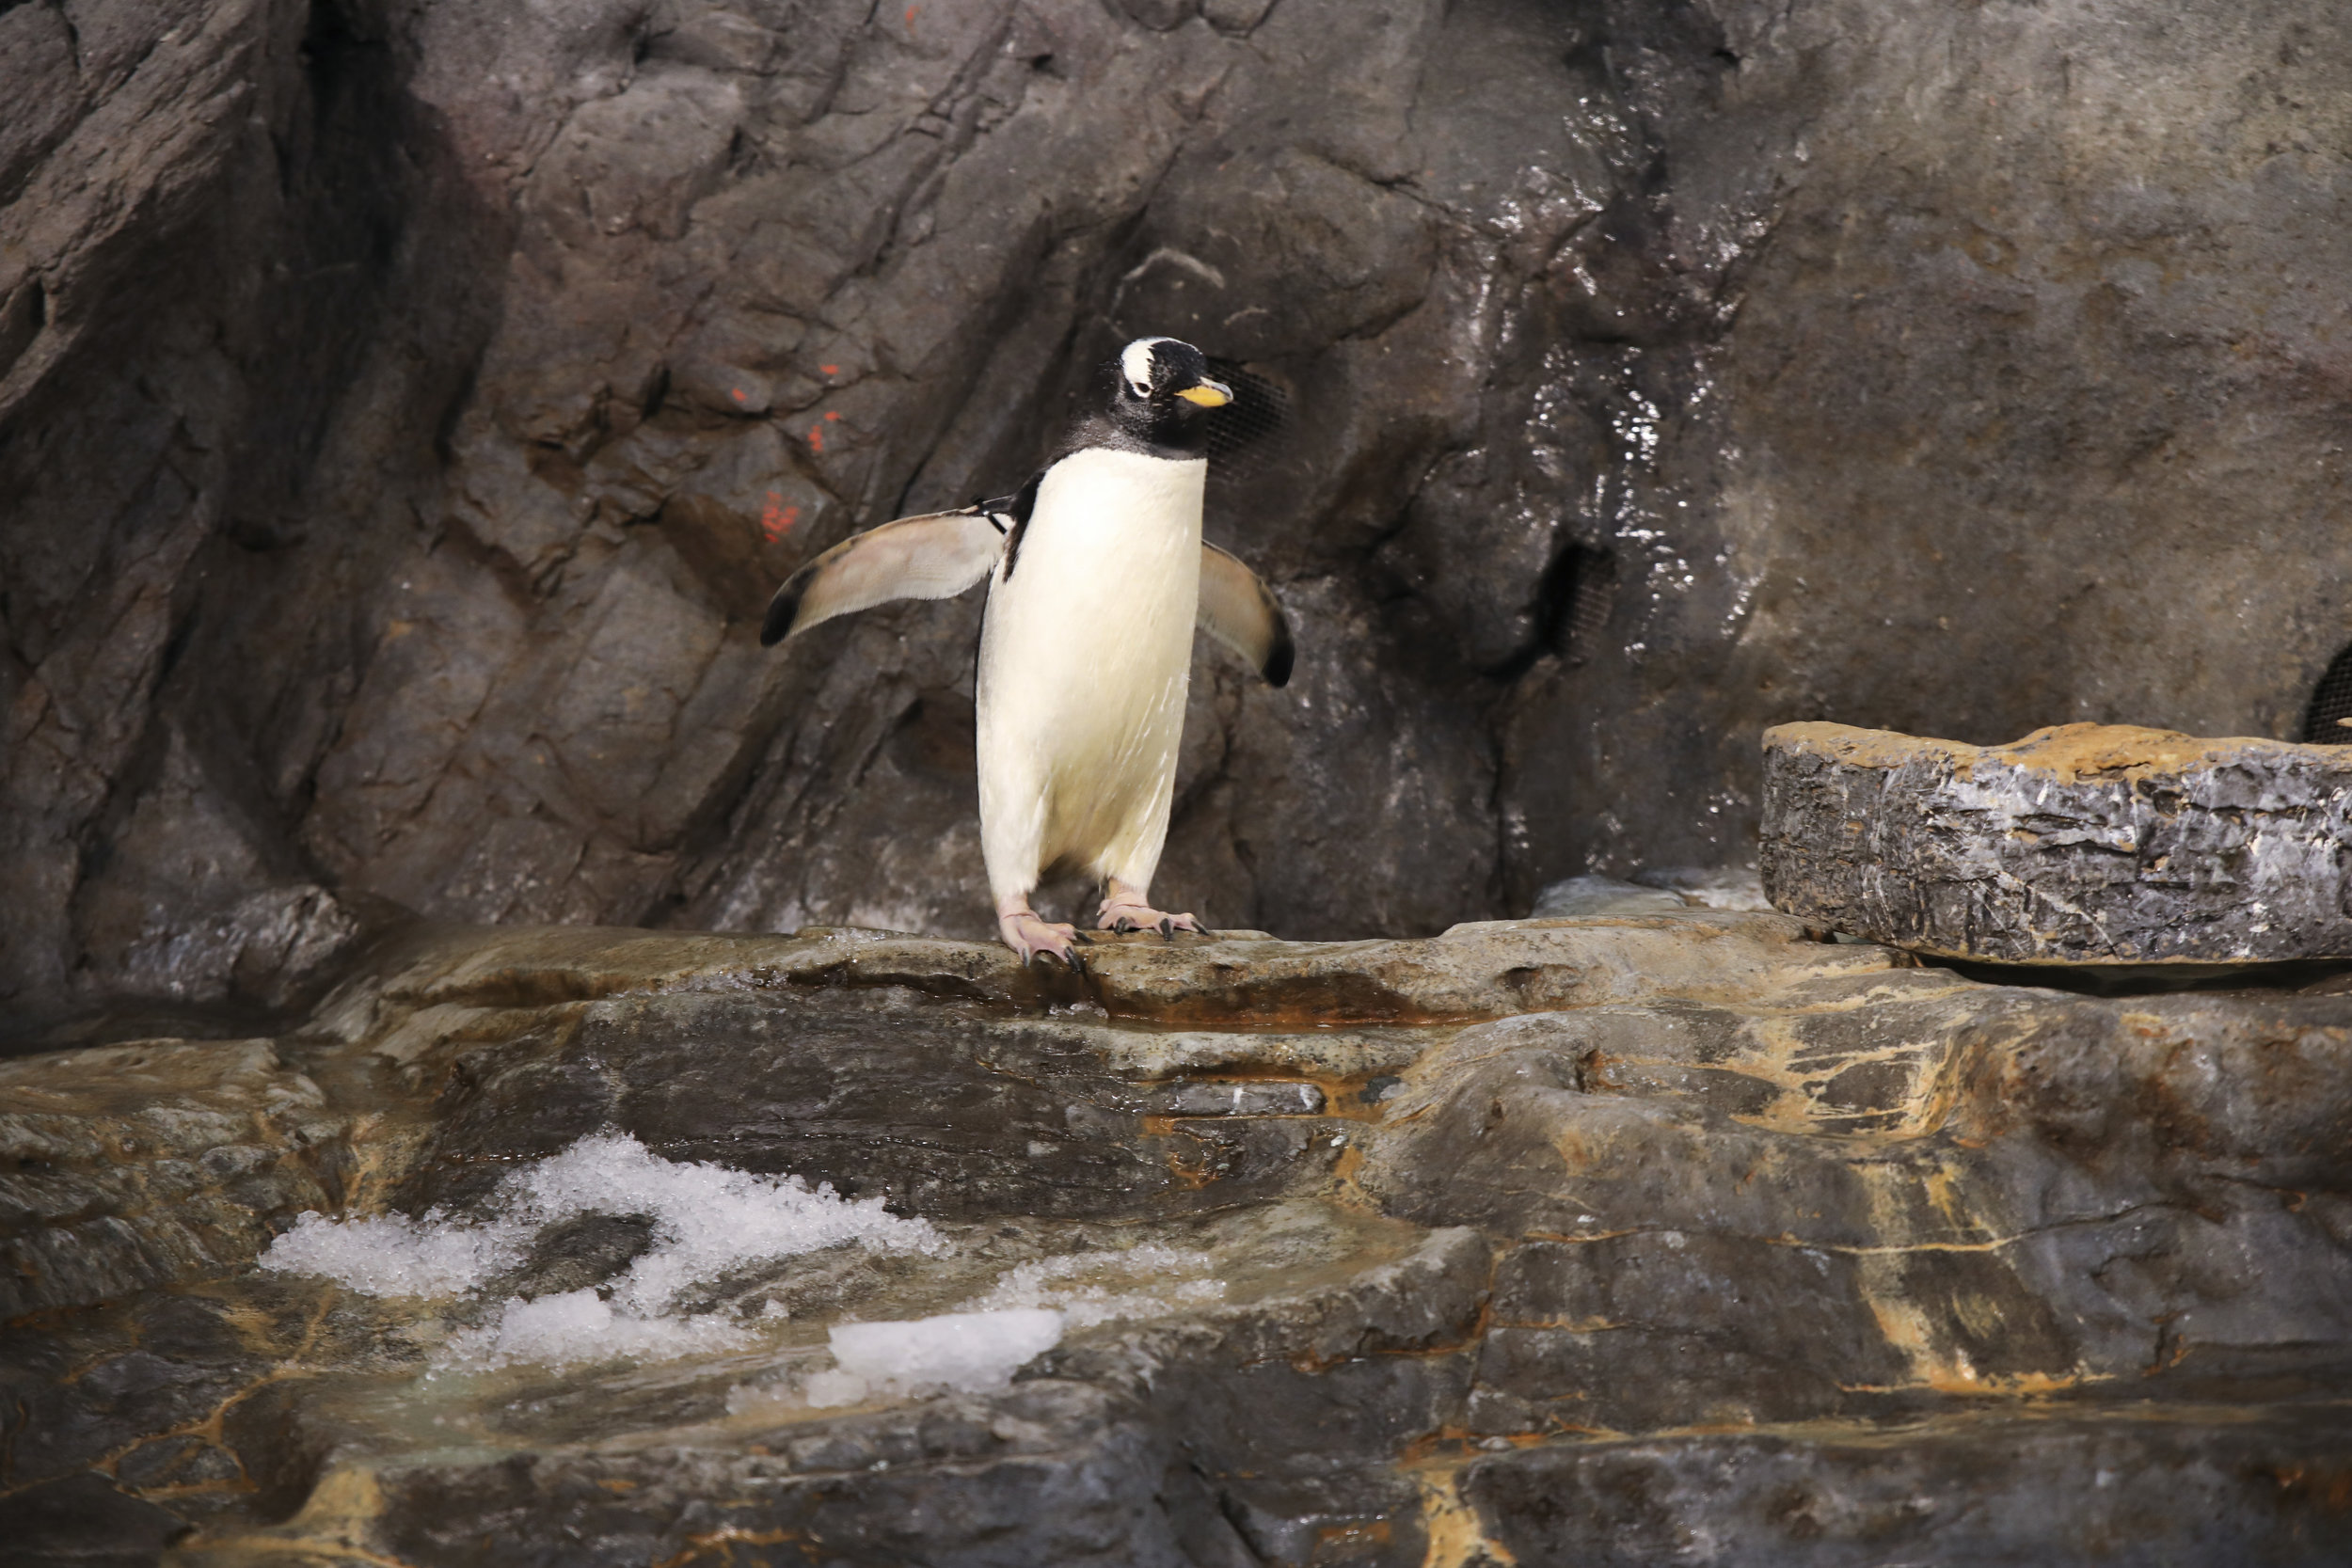 Saint_Louis_Zoo_Photography_Penguin_House.jpg